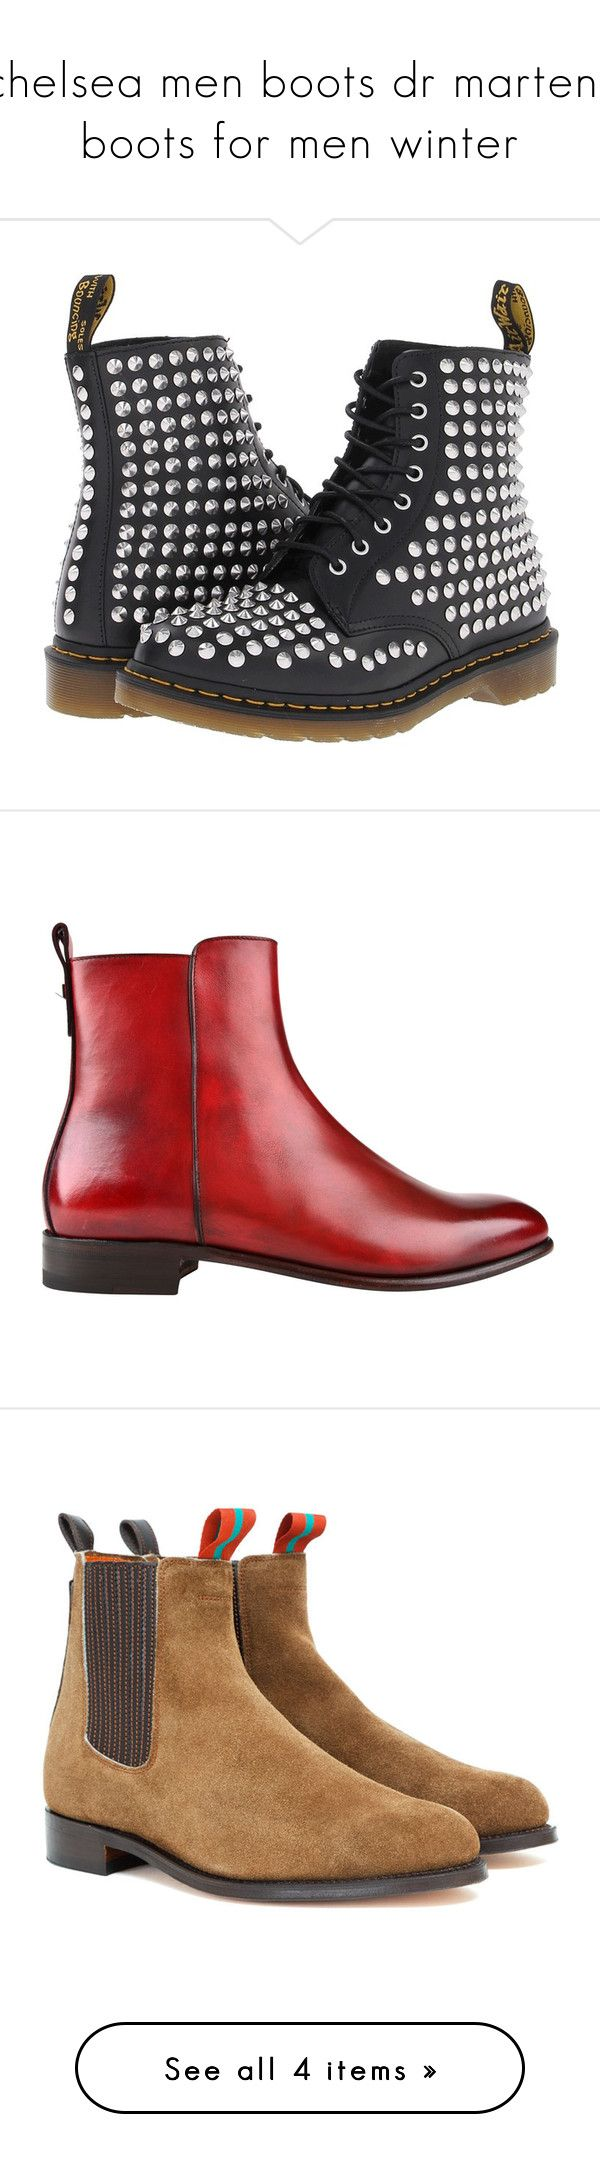 """chelsea men boots dr martens boots for men winter"" by romalegotskills ❤ liked on Polyvore featuring shoes, boots, ankle booties, ankle boots, black, black studded booties, black bootie, dr martens boots, black studded boots and black ankle boots"